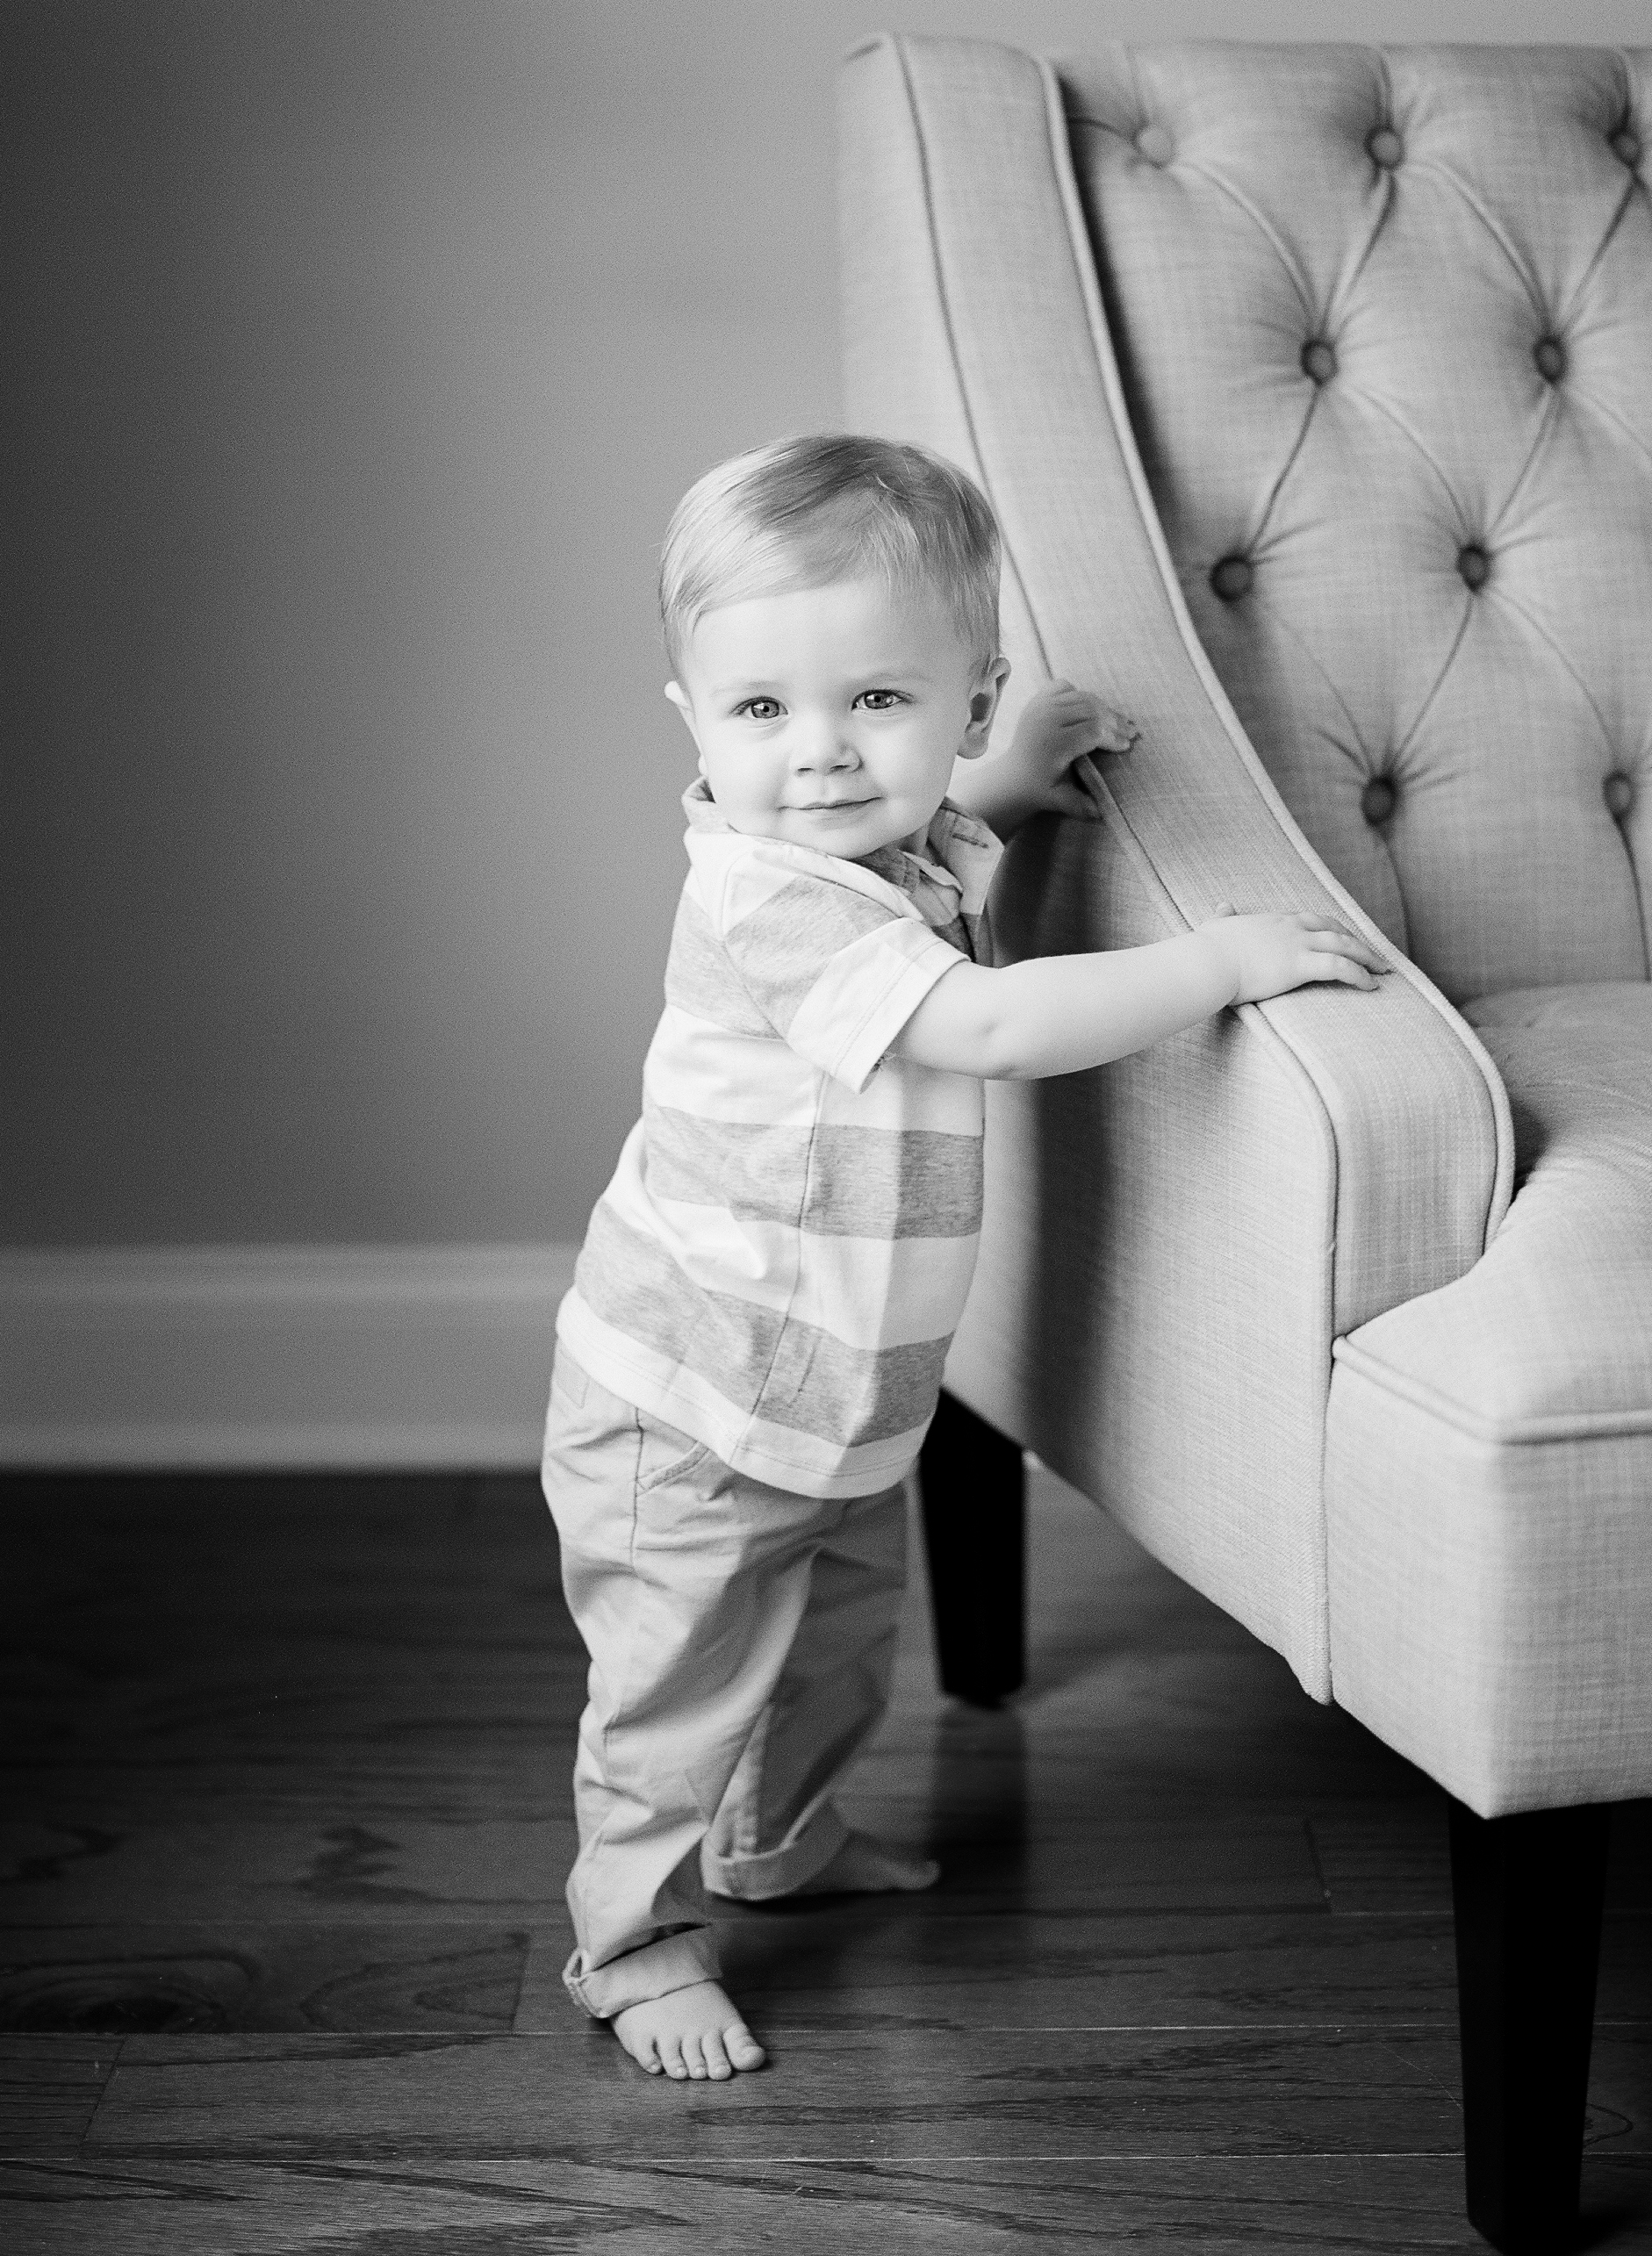 nashville-franklin-blackandwhite-childrens-portraiture-20.JPG